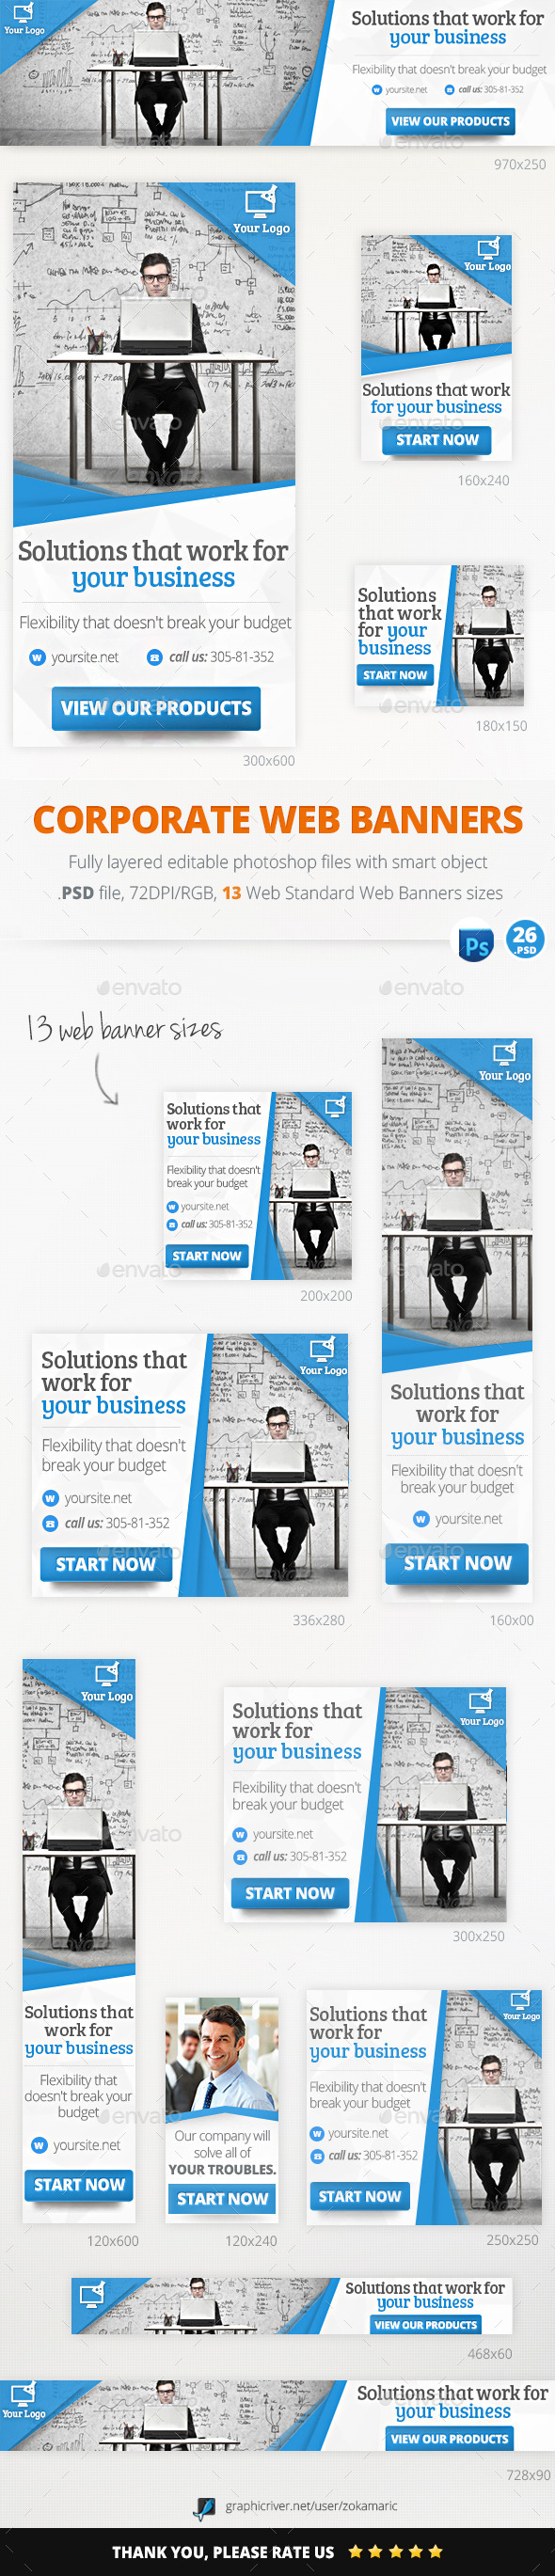 GraphicRiver Marketing Corporate Web Banners 11109688